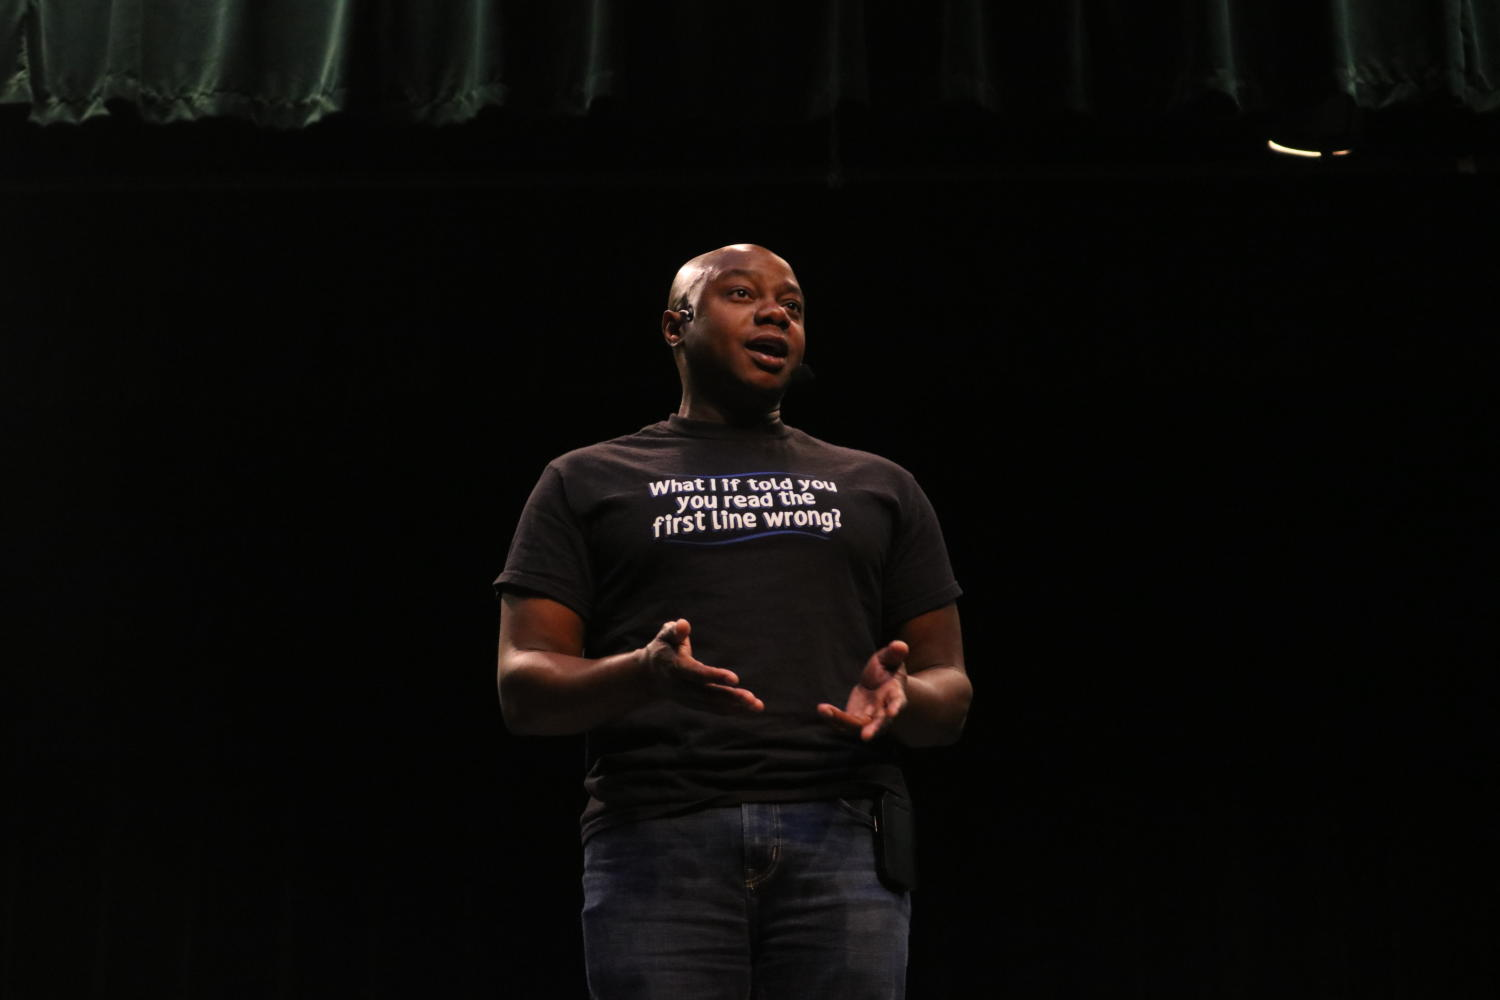 Dr.+Mykee+Flowlin+visited+Midlothian+High+during+Teacher+Work+Week+to+talk+to+the+faculty+members+of+Midlo%2C+Monacan%2C+James+River%2C+and+Manchester+about+diversity+and+compassion.